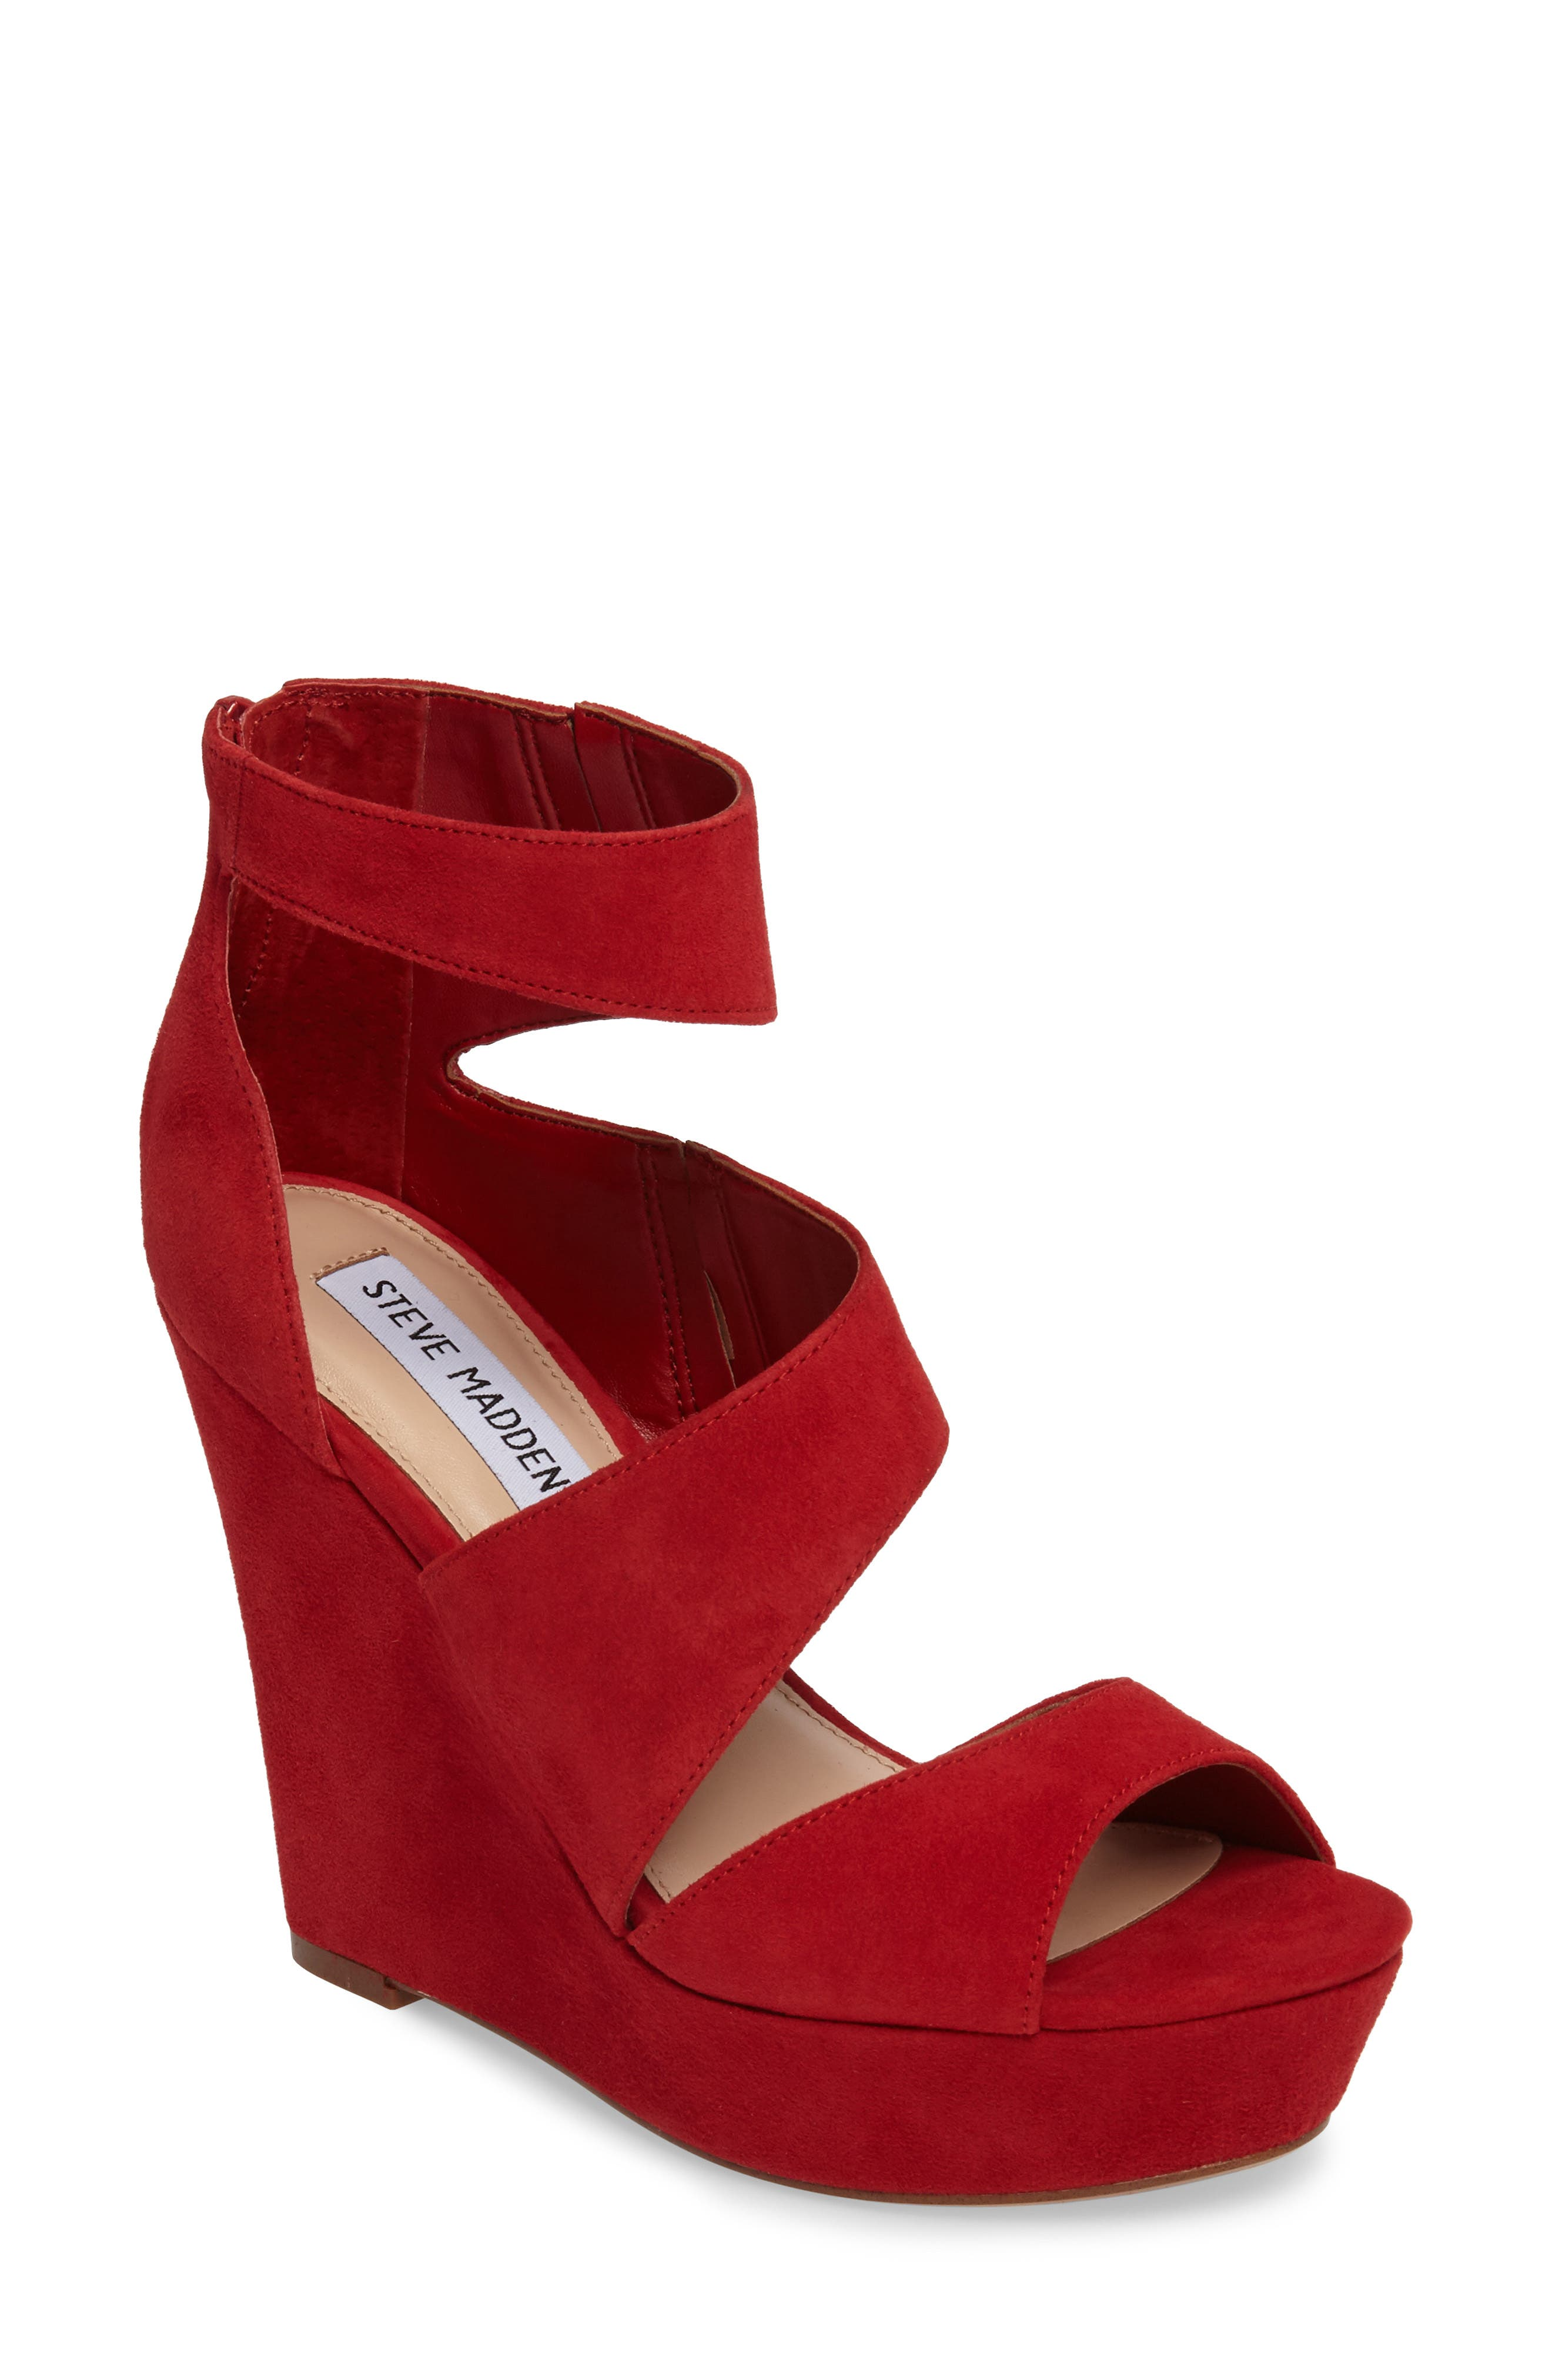 Red Wedges for Women | Nordstrom